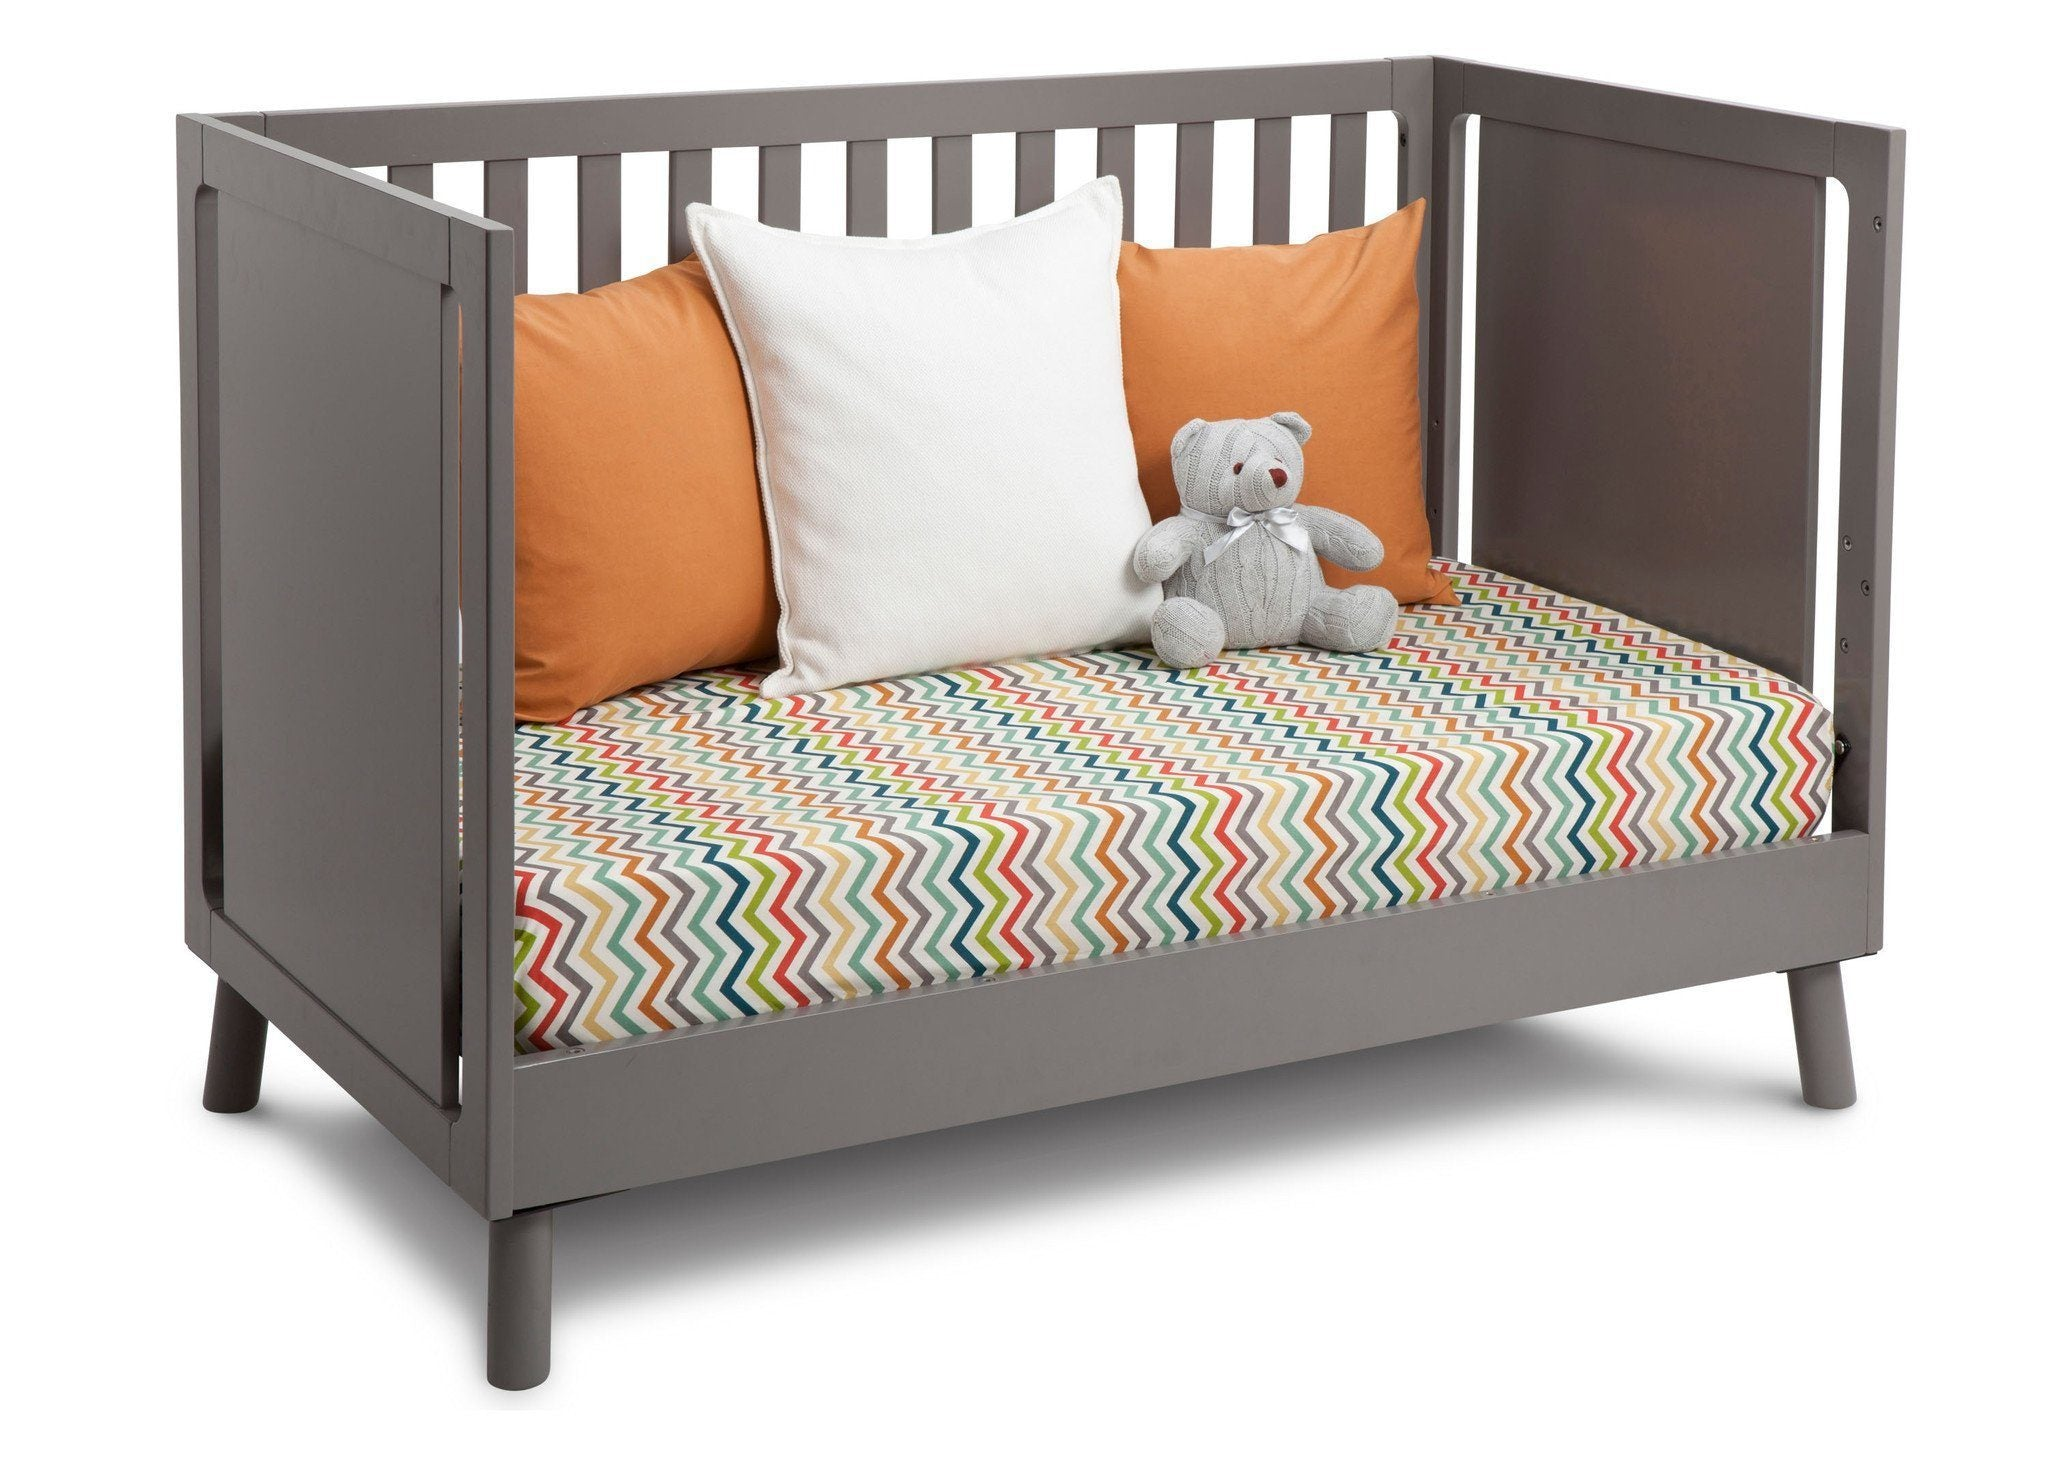 Delta Children Classic Grey (028) Manhattan 3-in-1 Crib, Day Bed Conversion a5a